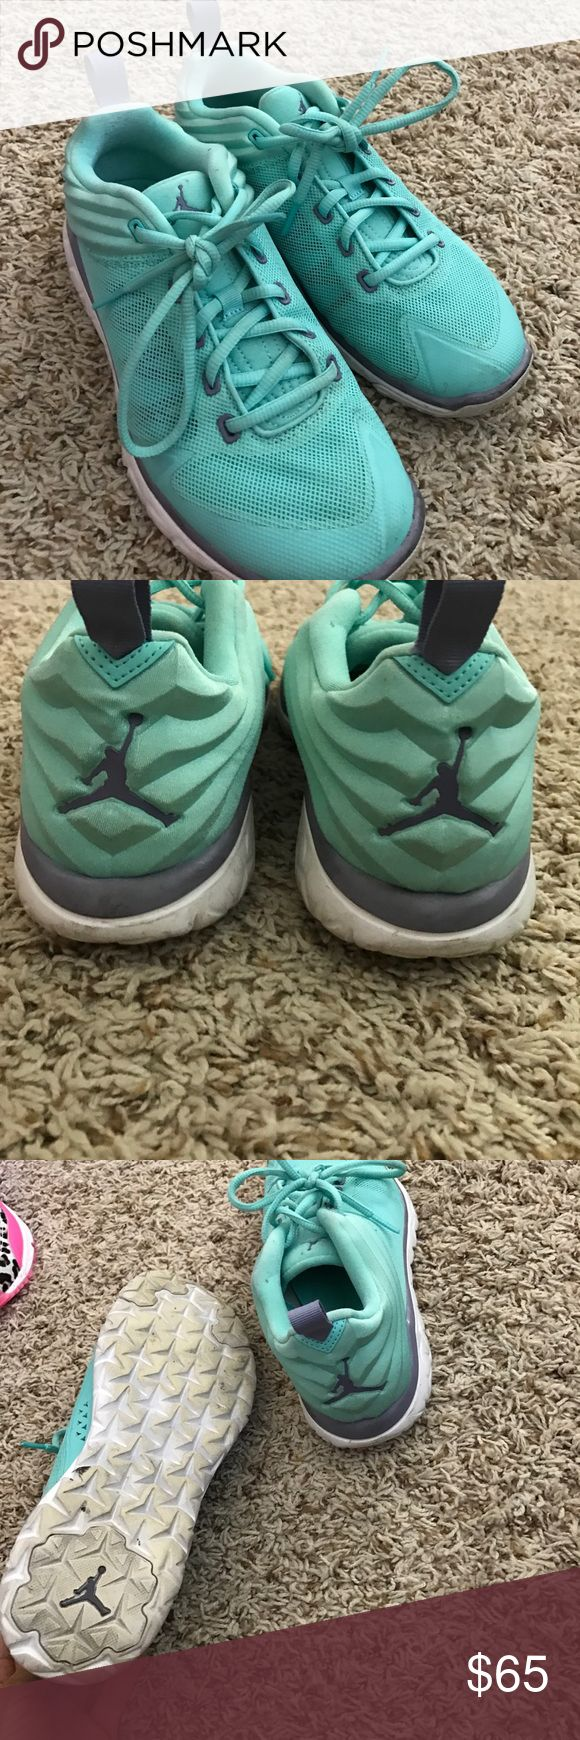 Jordan trainers size 7Y Worn about 2 or 3 times. I have a TON of gymshoes so none really get worn too much. All are in great condition. Jordan Shoes Athletic Shoes